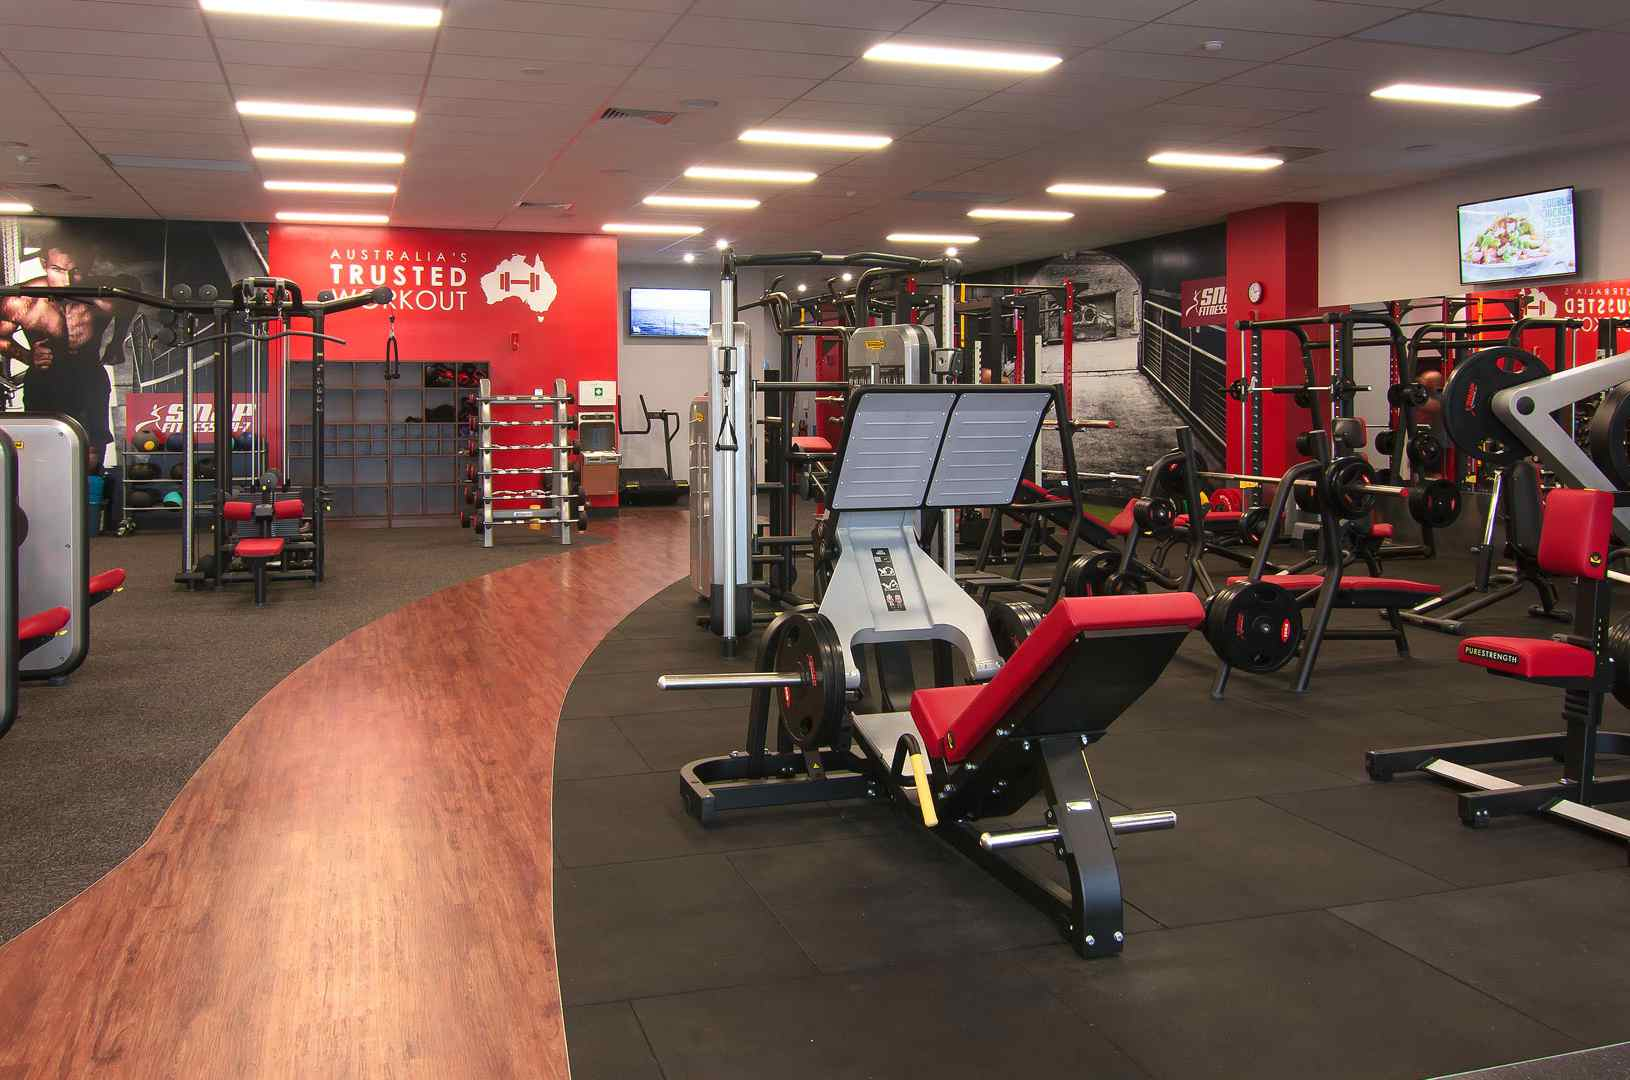 picture of a gym interior with equipments